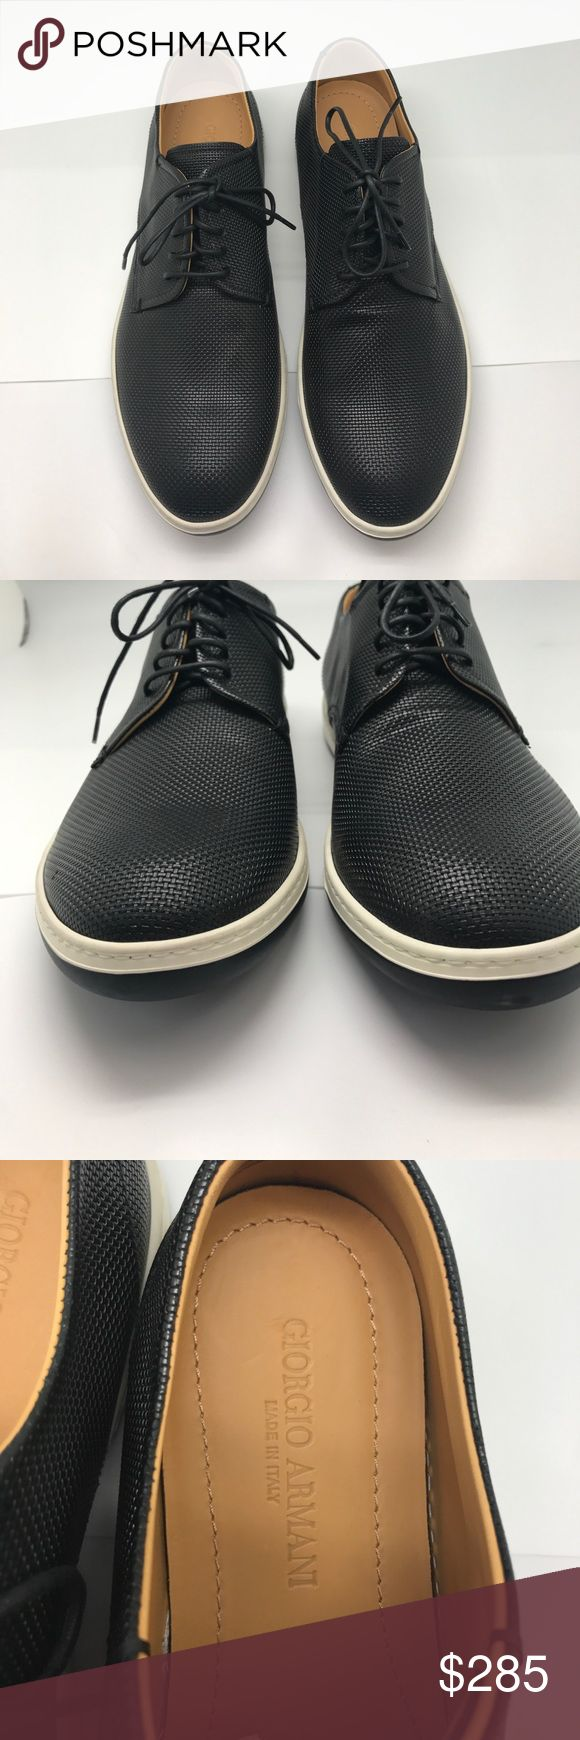 Men's Giorgio Armani Woven Leather Black Sneakers Giorgio Armani woven leather sneaker. Round toe. Lace-up front. Rubber sole. Made in Italy.  Includes: -Original Box -Dust bag  -Certificate of Authenticity Giorgio Armani Shoes Sneakers